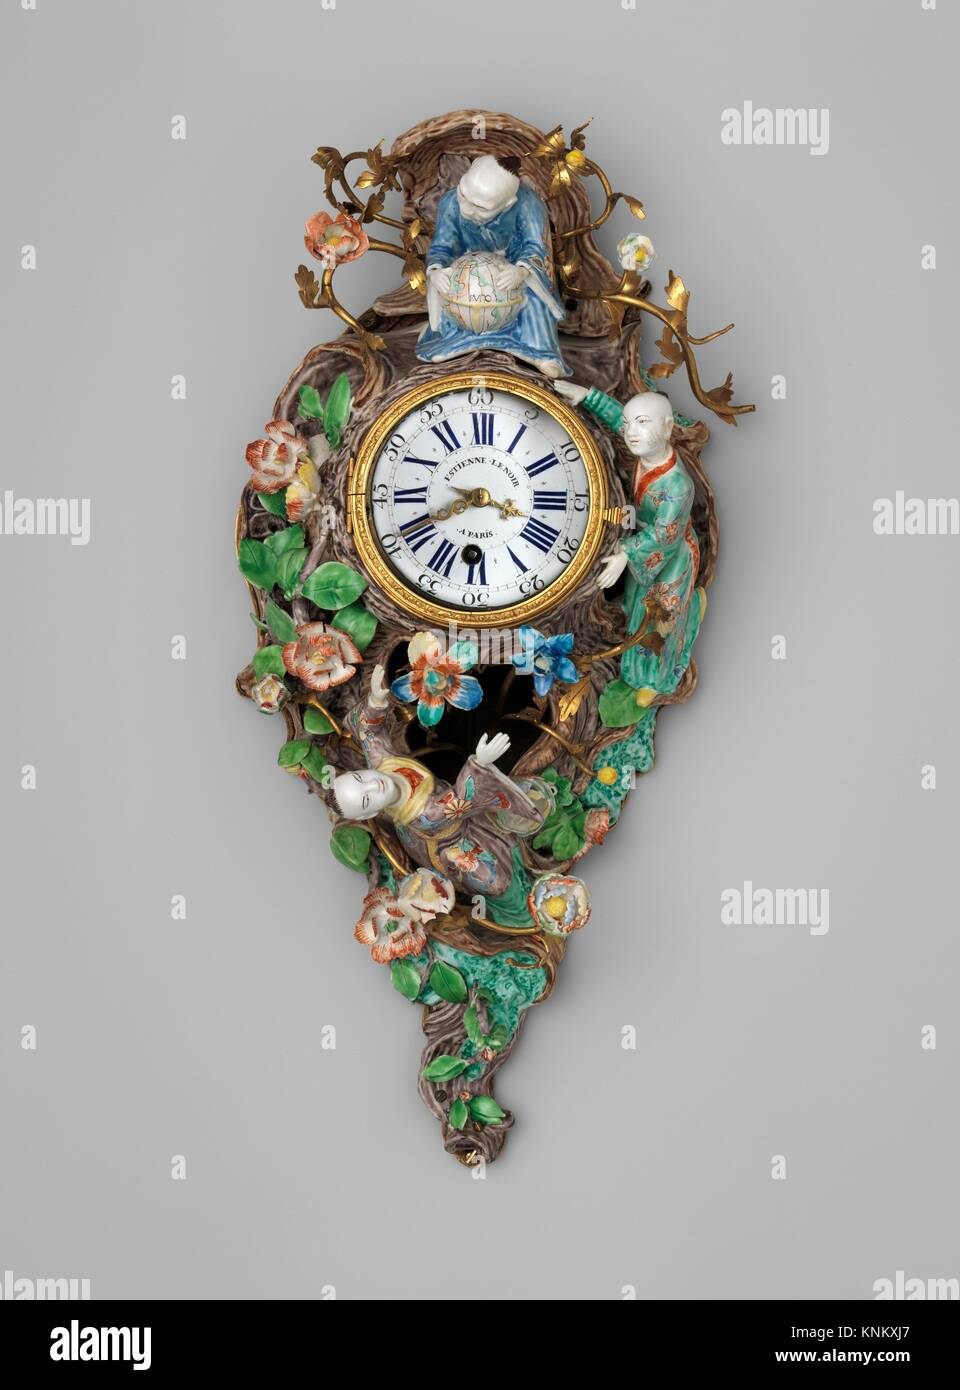 Wall clock (cartel). Maker: Clockmaker: Étienne LeNoir (French, 1675-1739); Manufactory: Case by Chantilly - Stock Image